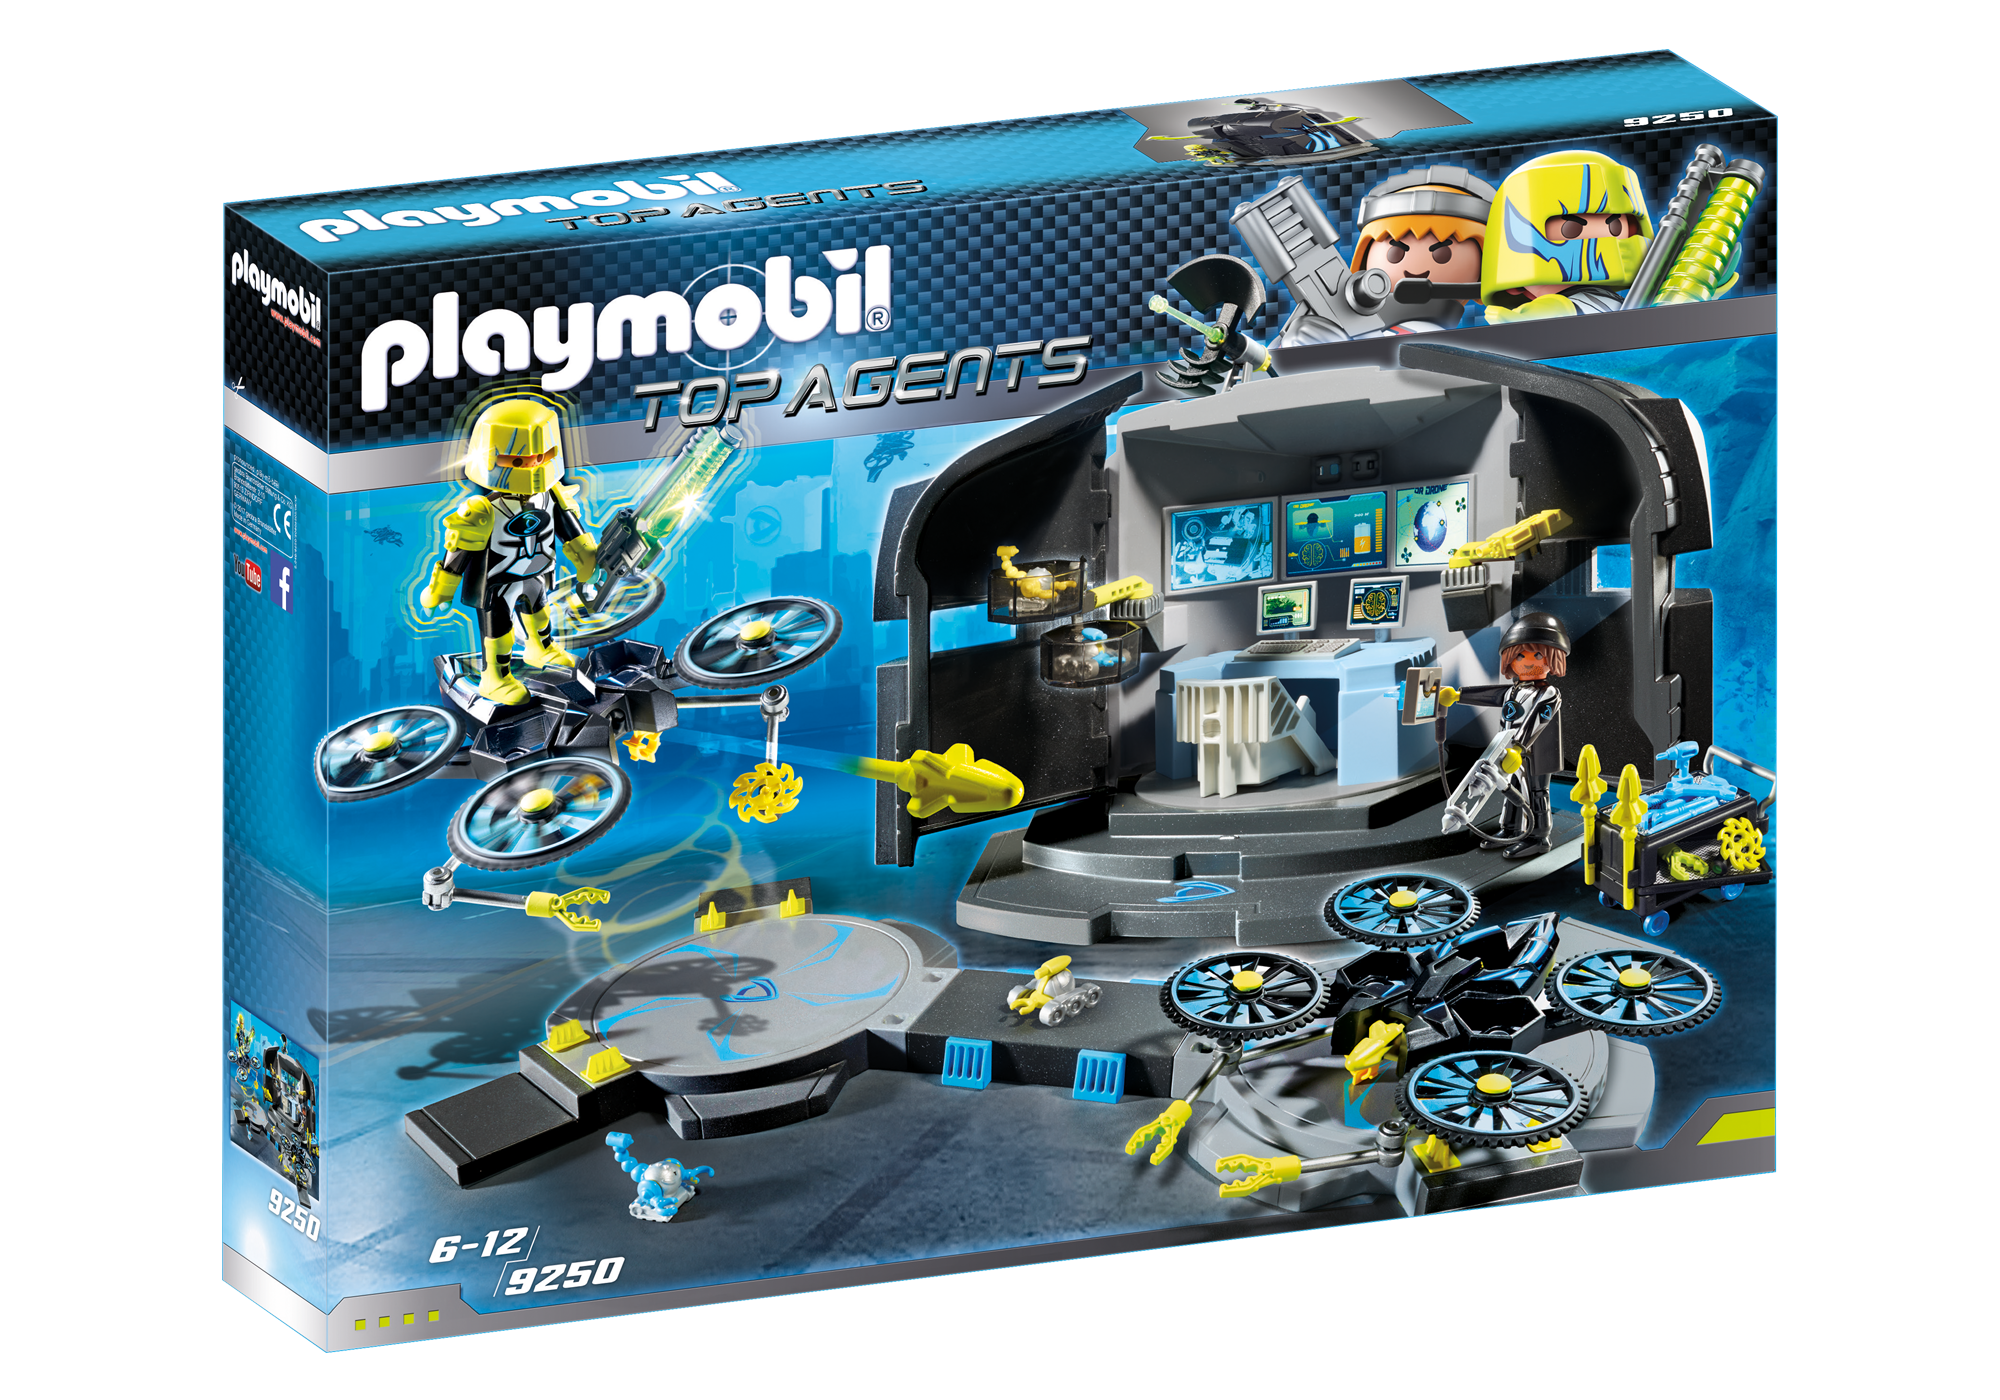 http://media.playmobil.com/i/playmobil/9250_product_box_front